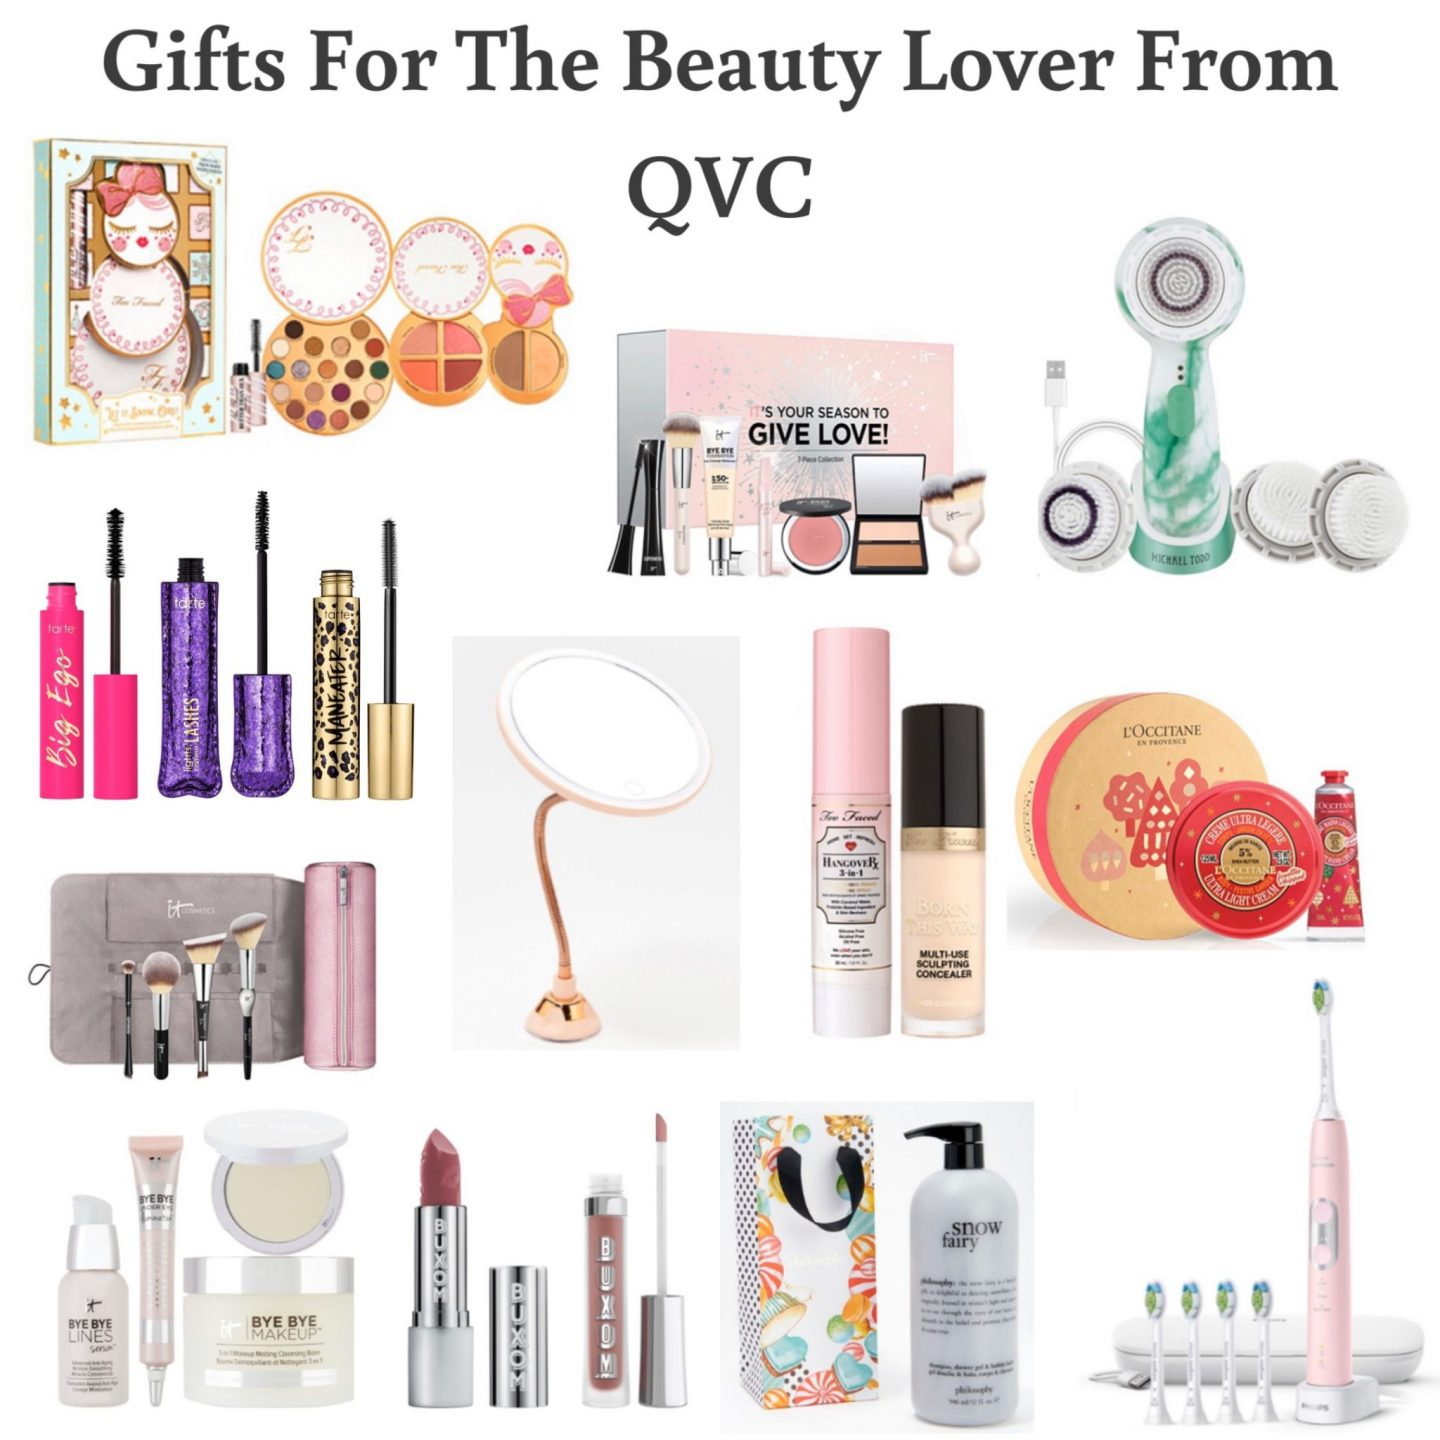 Gifts For HER from QVC